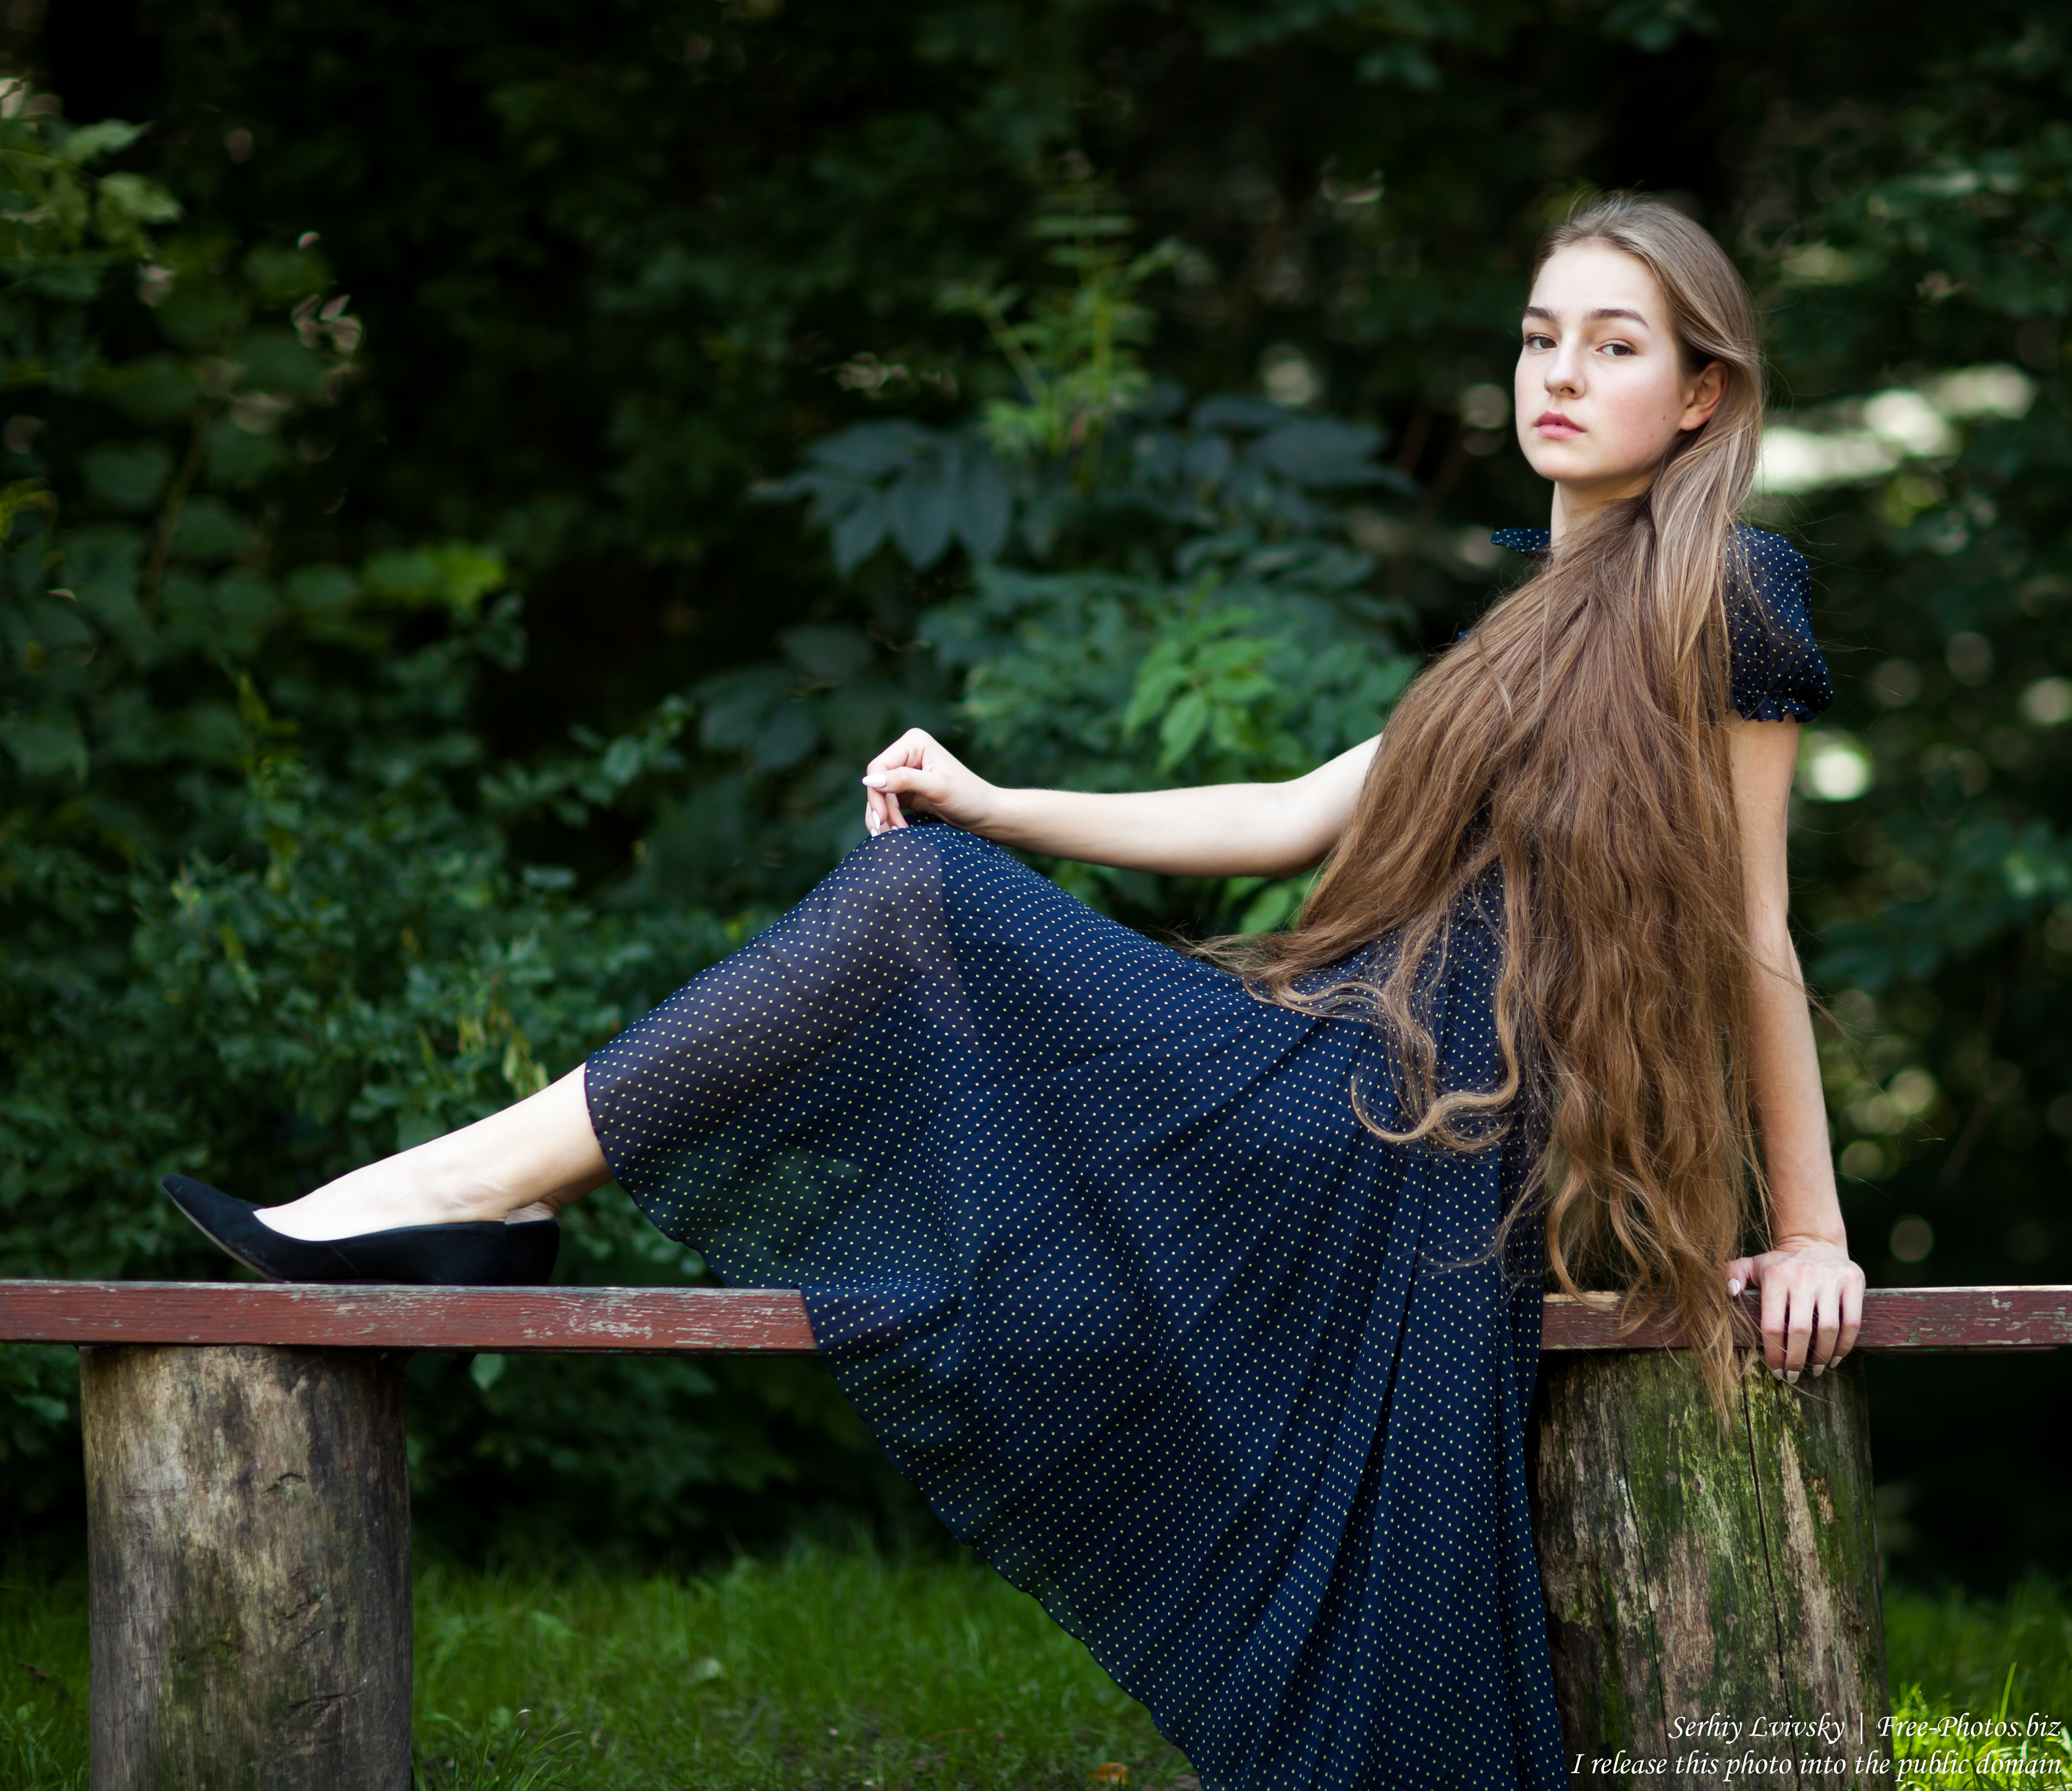 Justyna - a 16-year-old fair-haired girl photographed in June 2018 by Serhiy Lvivsky, picture 21